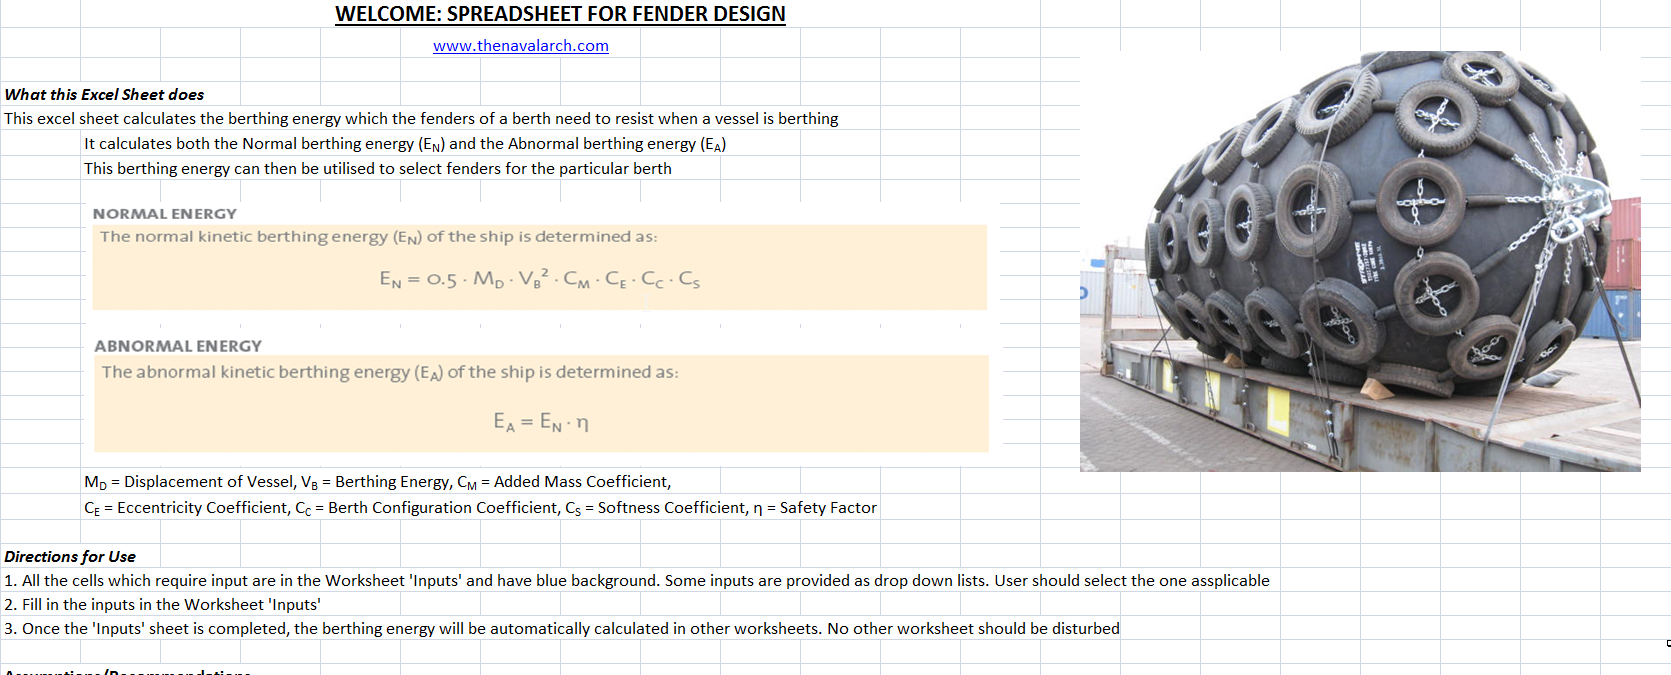 Fender-Design-TheNavalArch-1